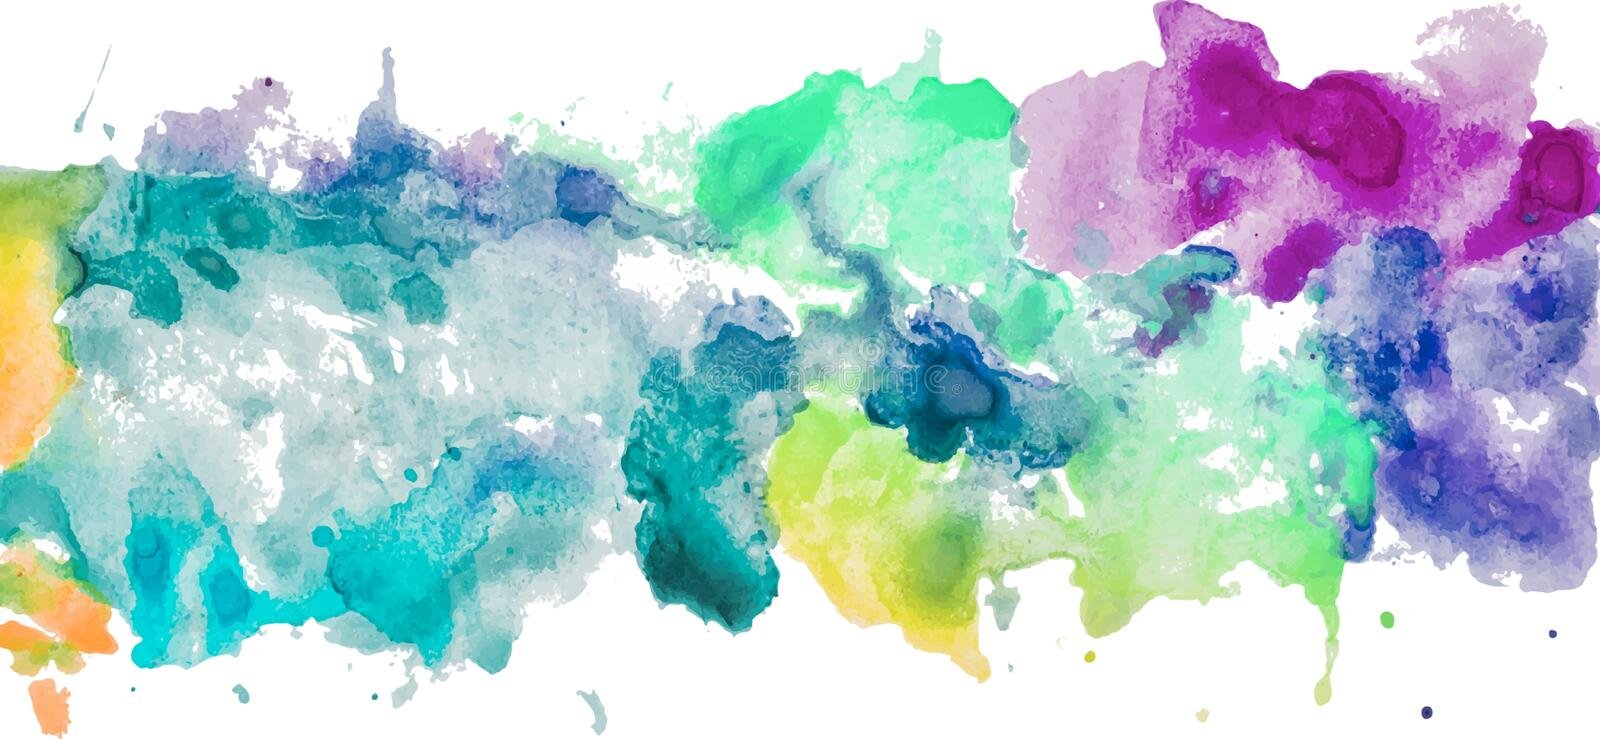 Colorful watercolor spots hand drawn paper texture royalty free illustration